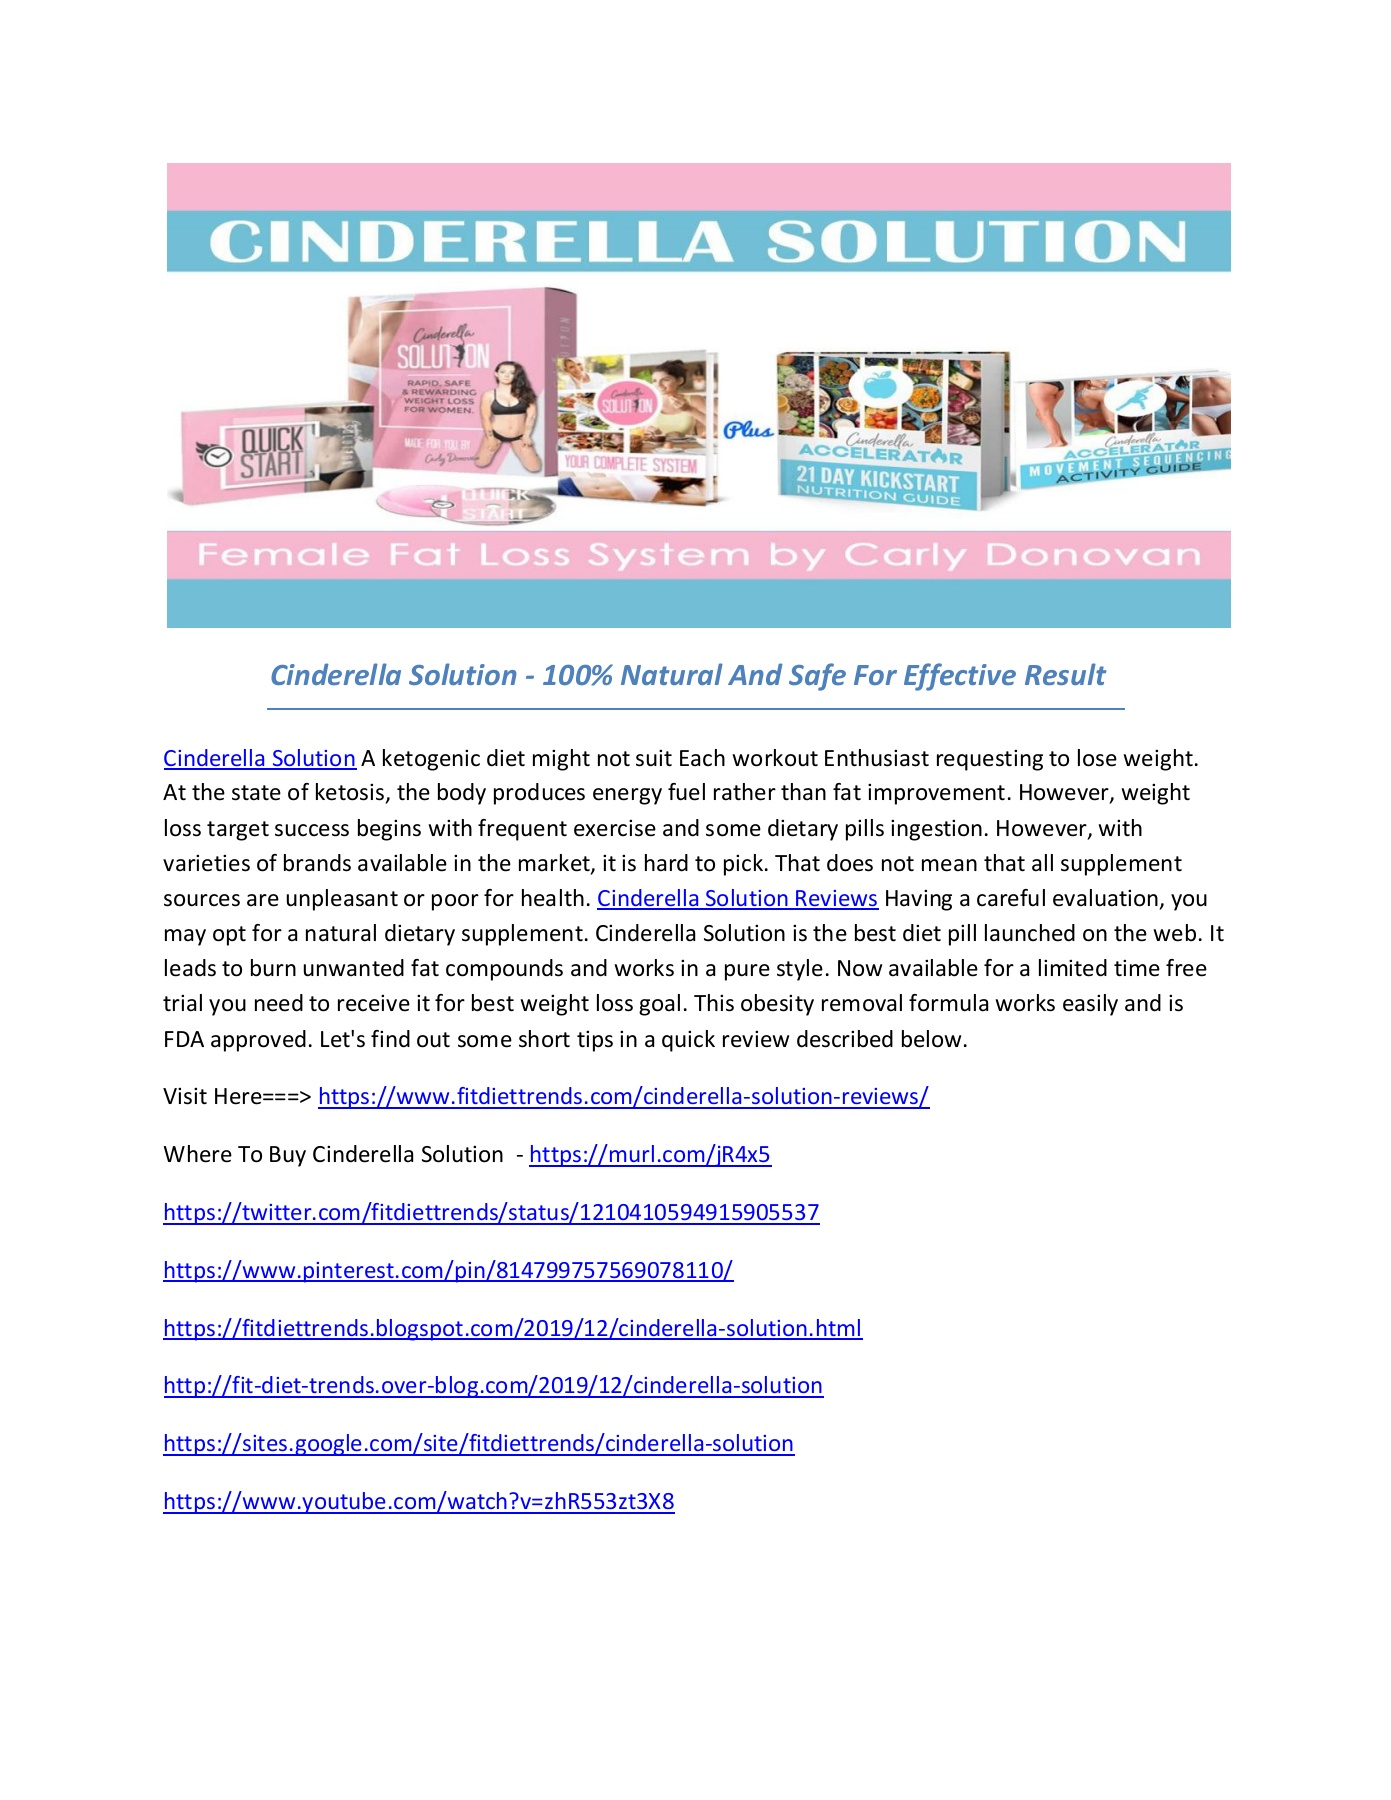 Verified Online Promotional Code Cinderella Solution March 2020